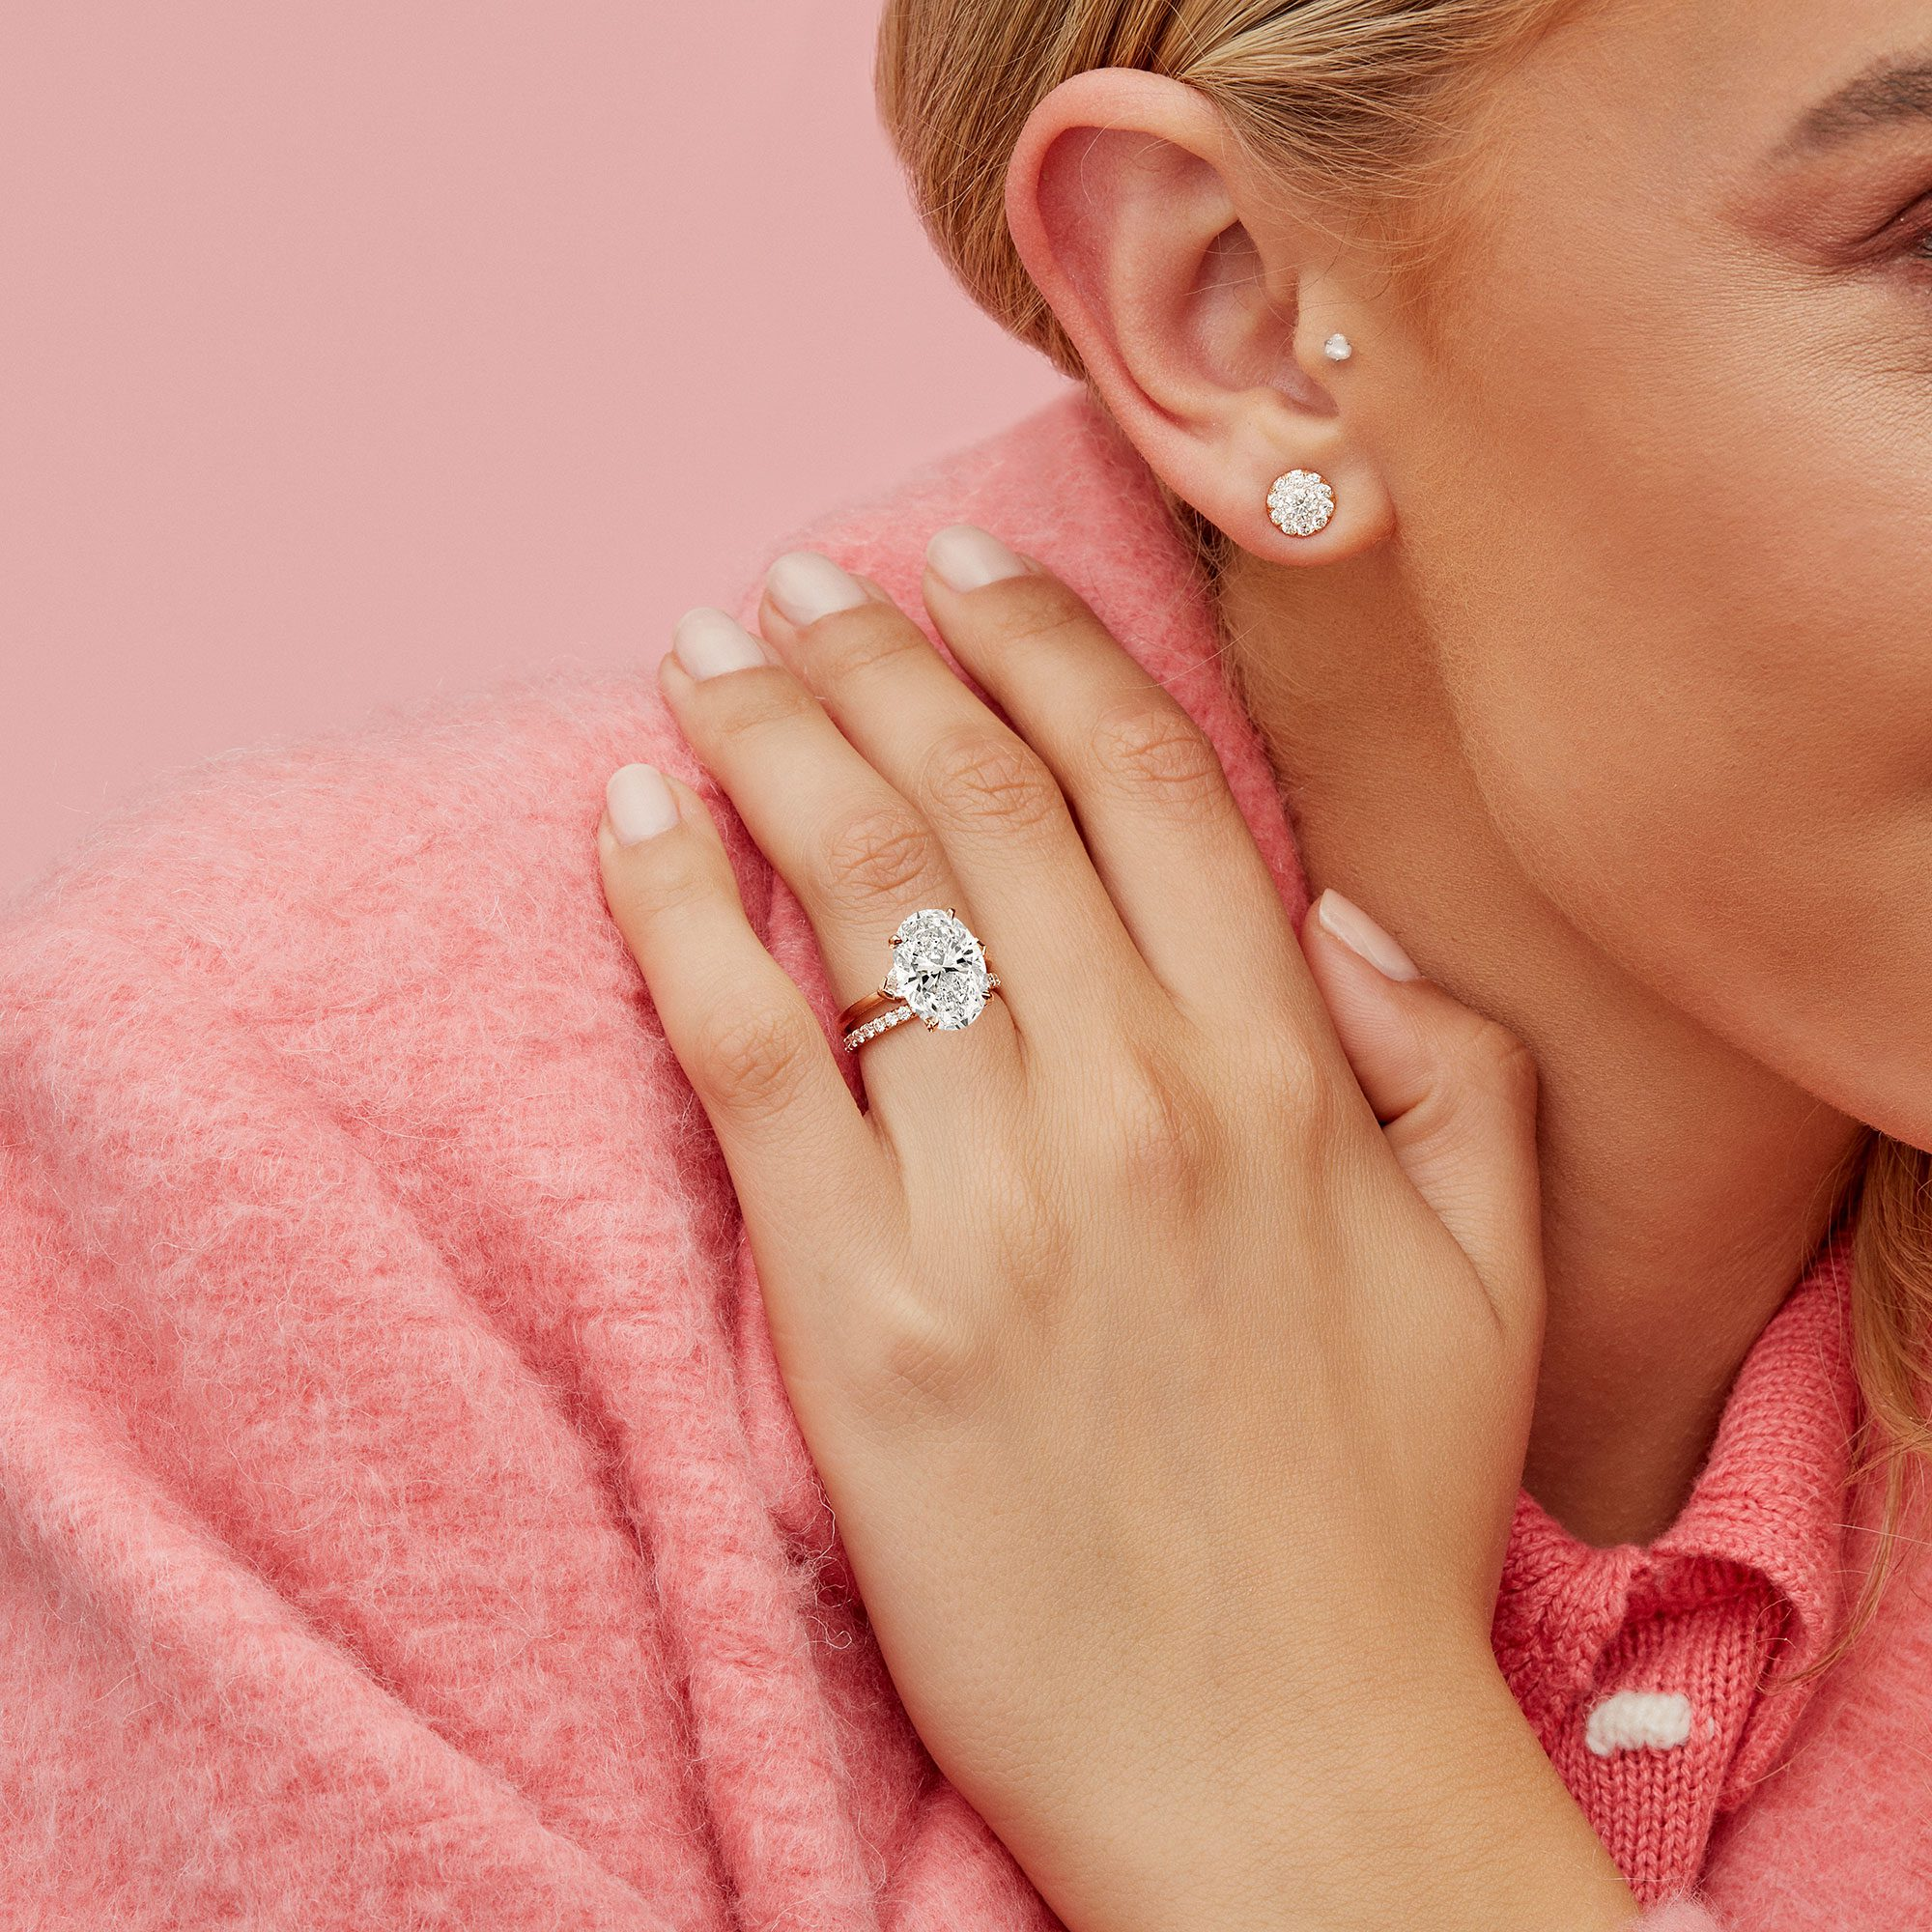 Claire Three Stone Oval Cut Lab Grown Diamond Engagement Ring on Hand from Oui